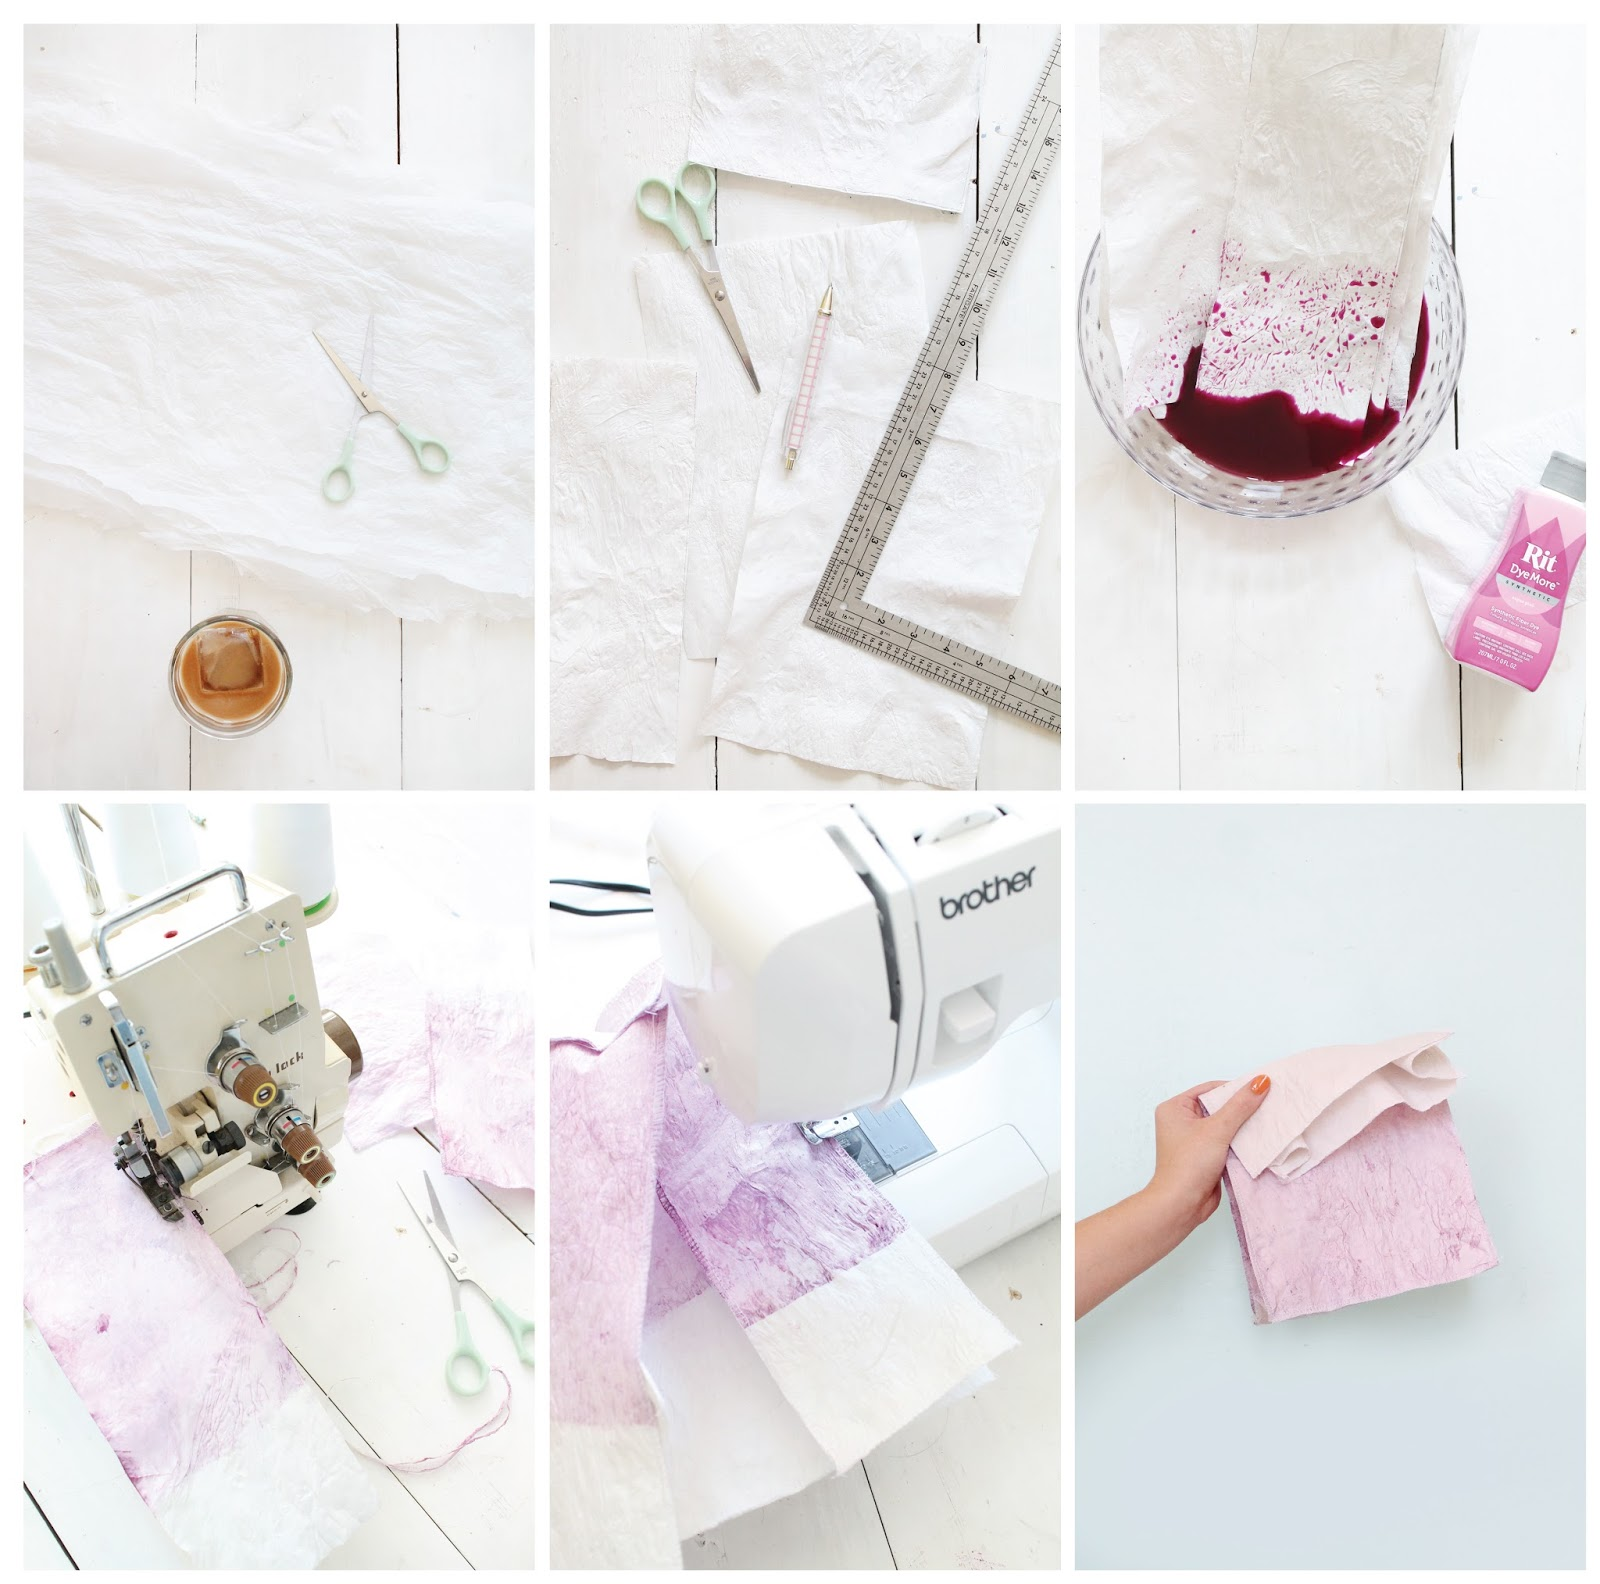 Make a dyed lunch sack from recycled plastic bags.